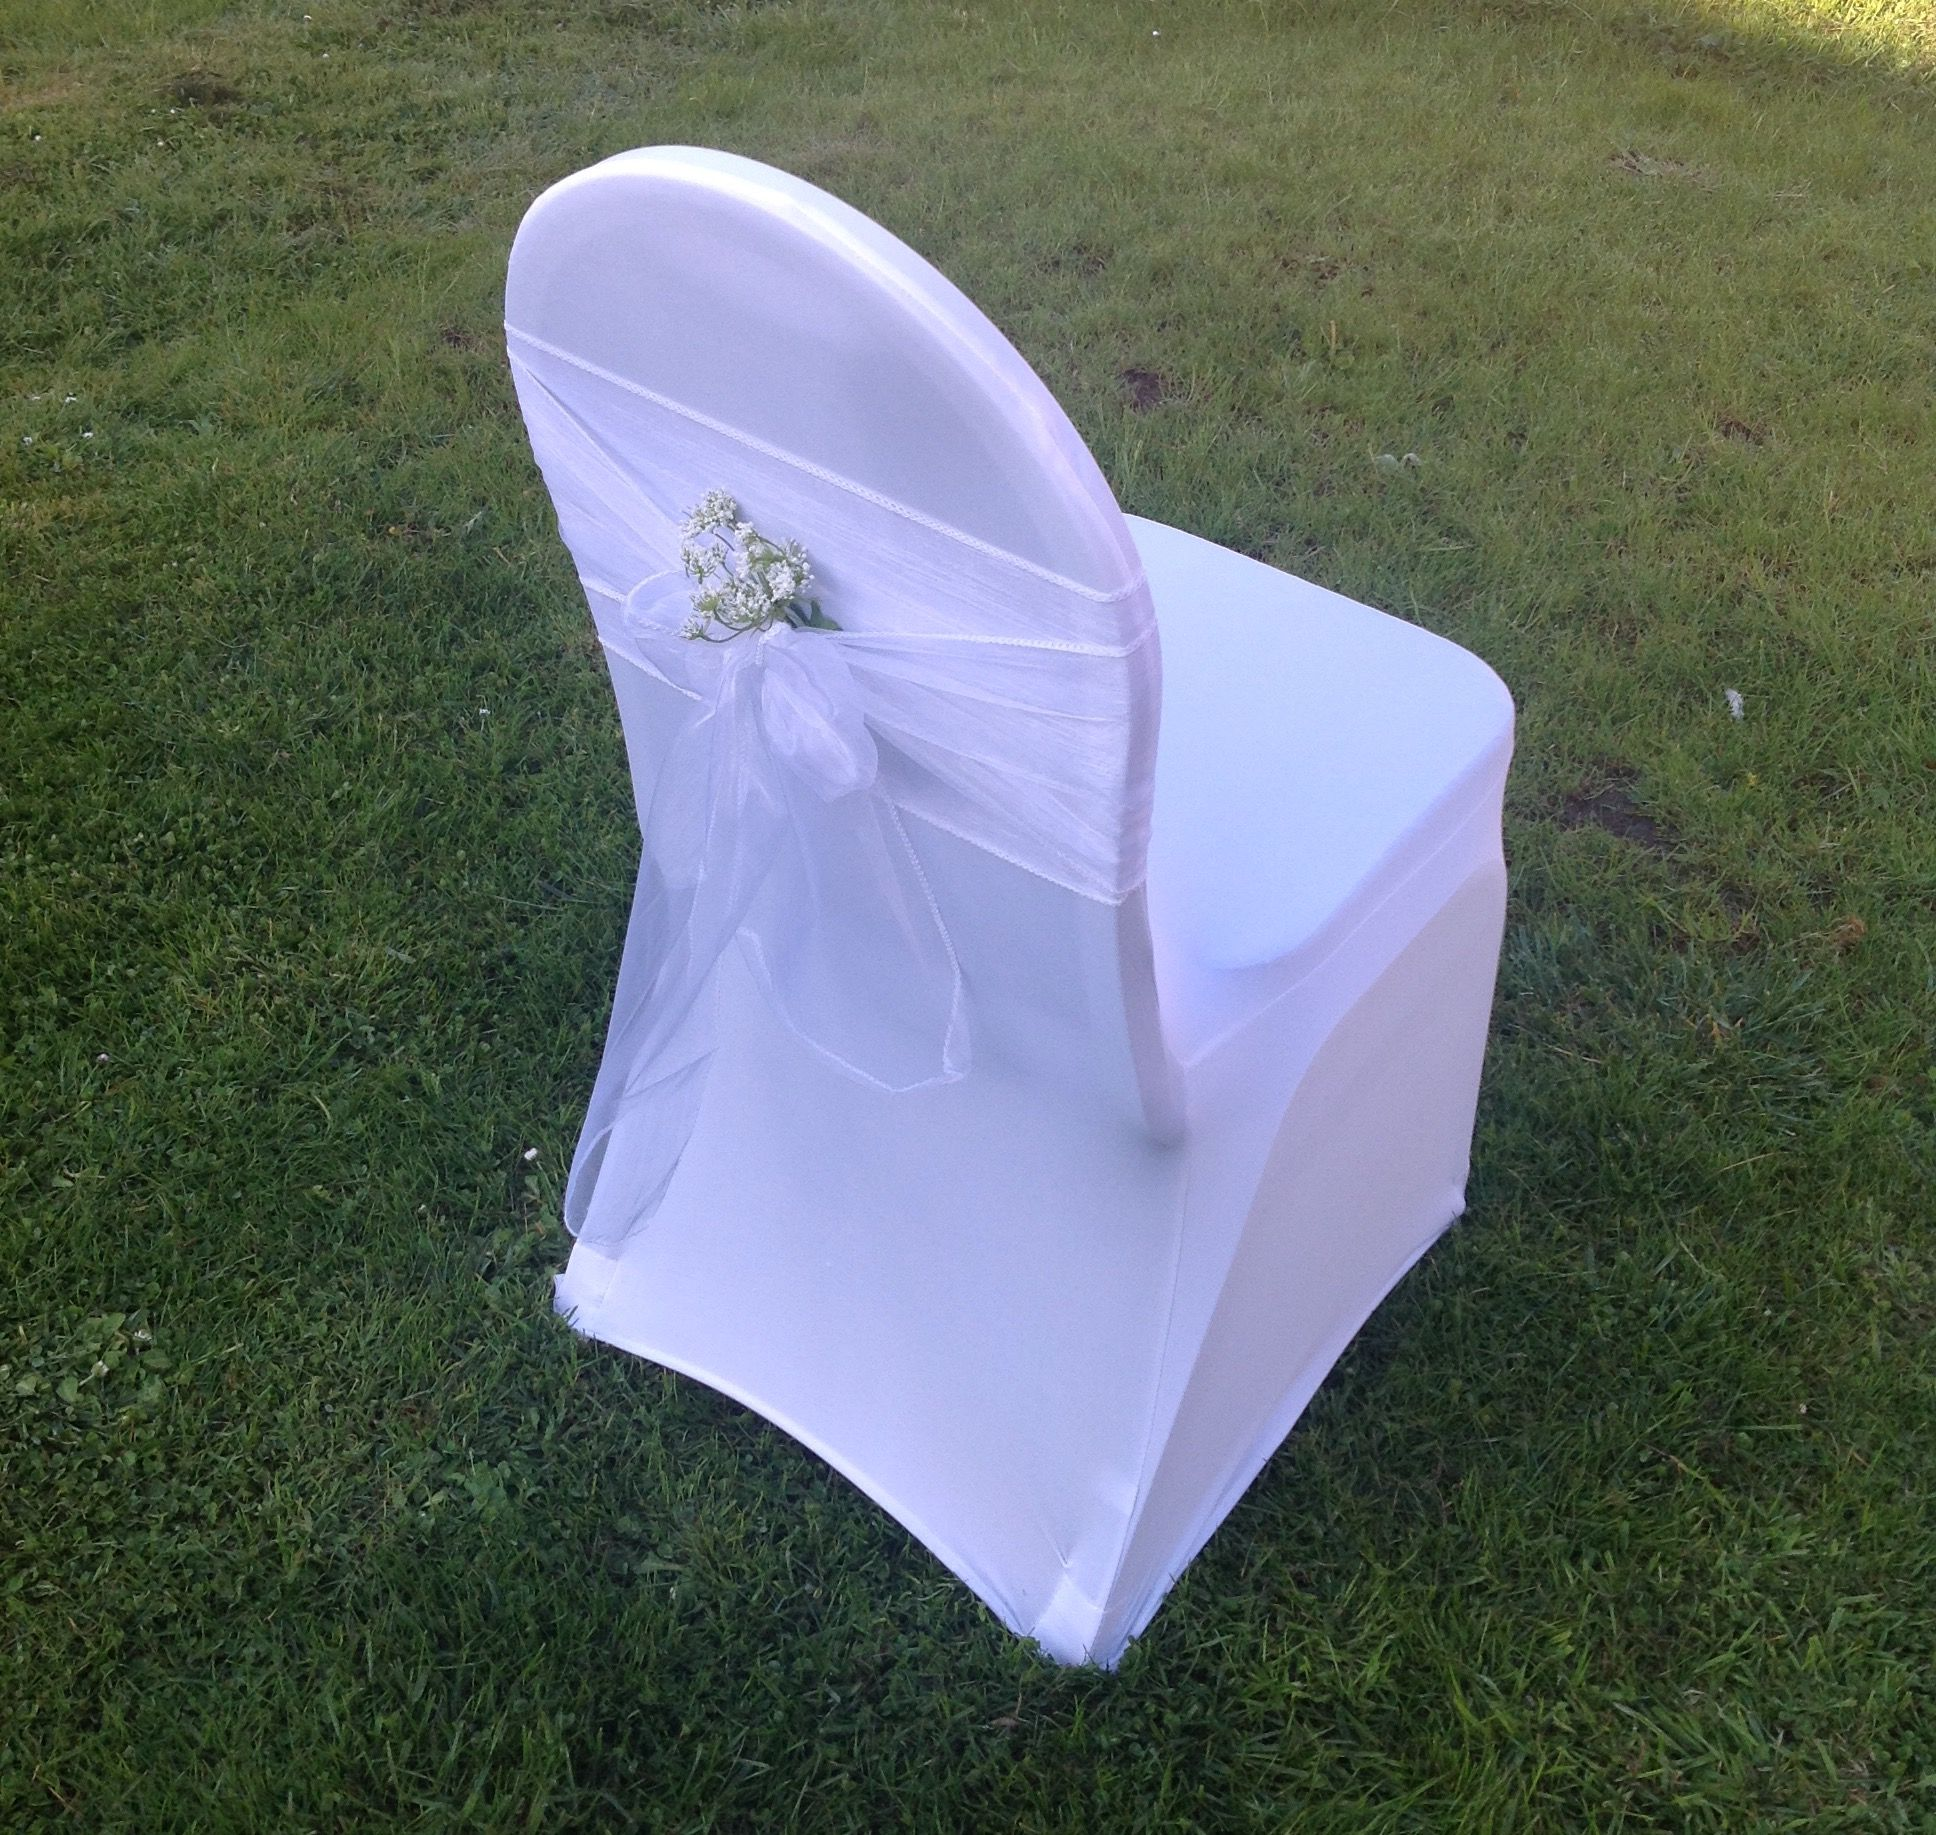 chair cover hire and fitting vanguard furniture dining chairs we now covers easy diy in seconds wedding